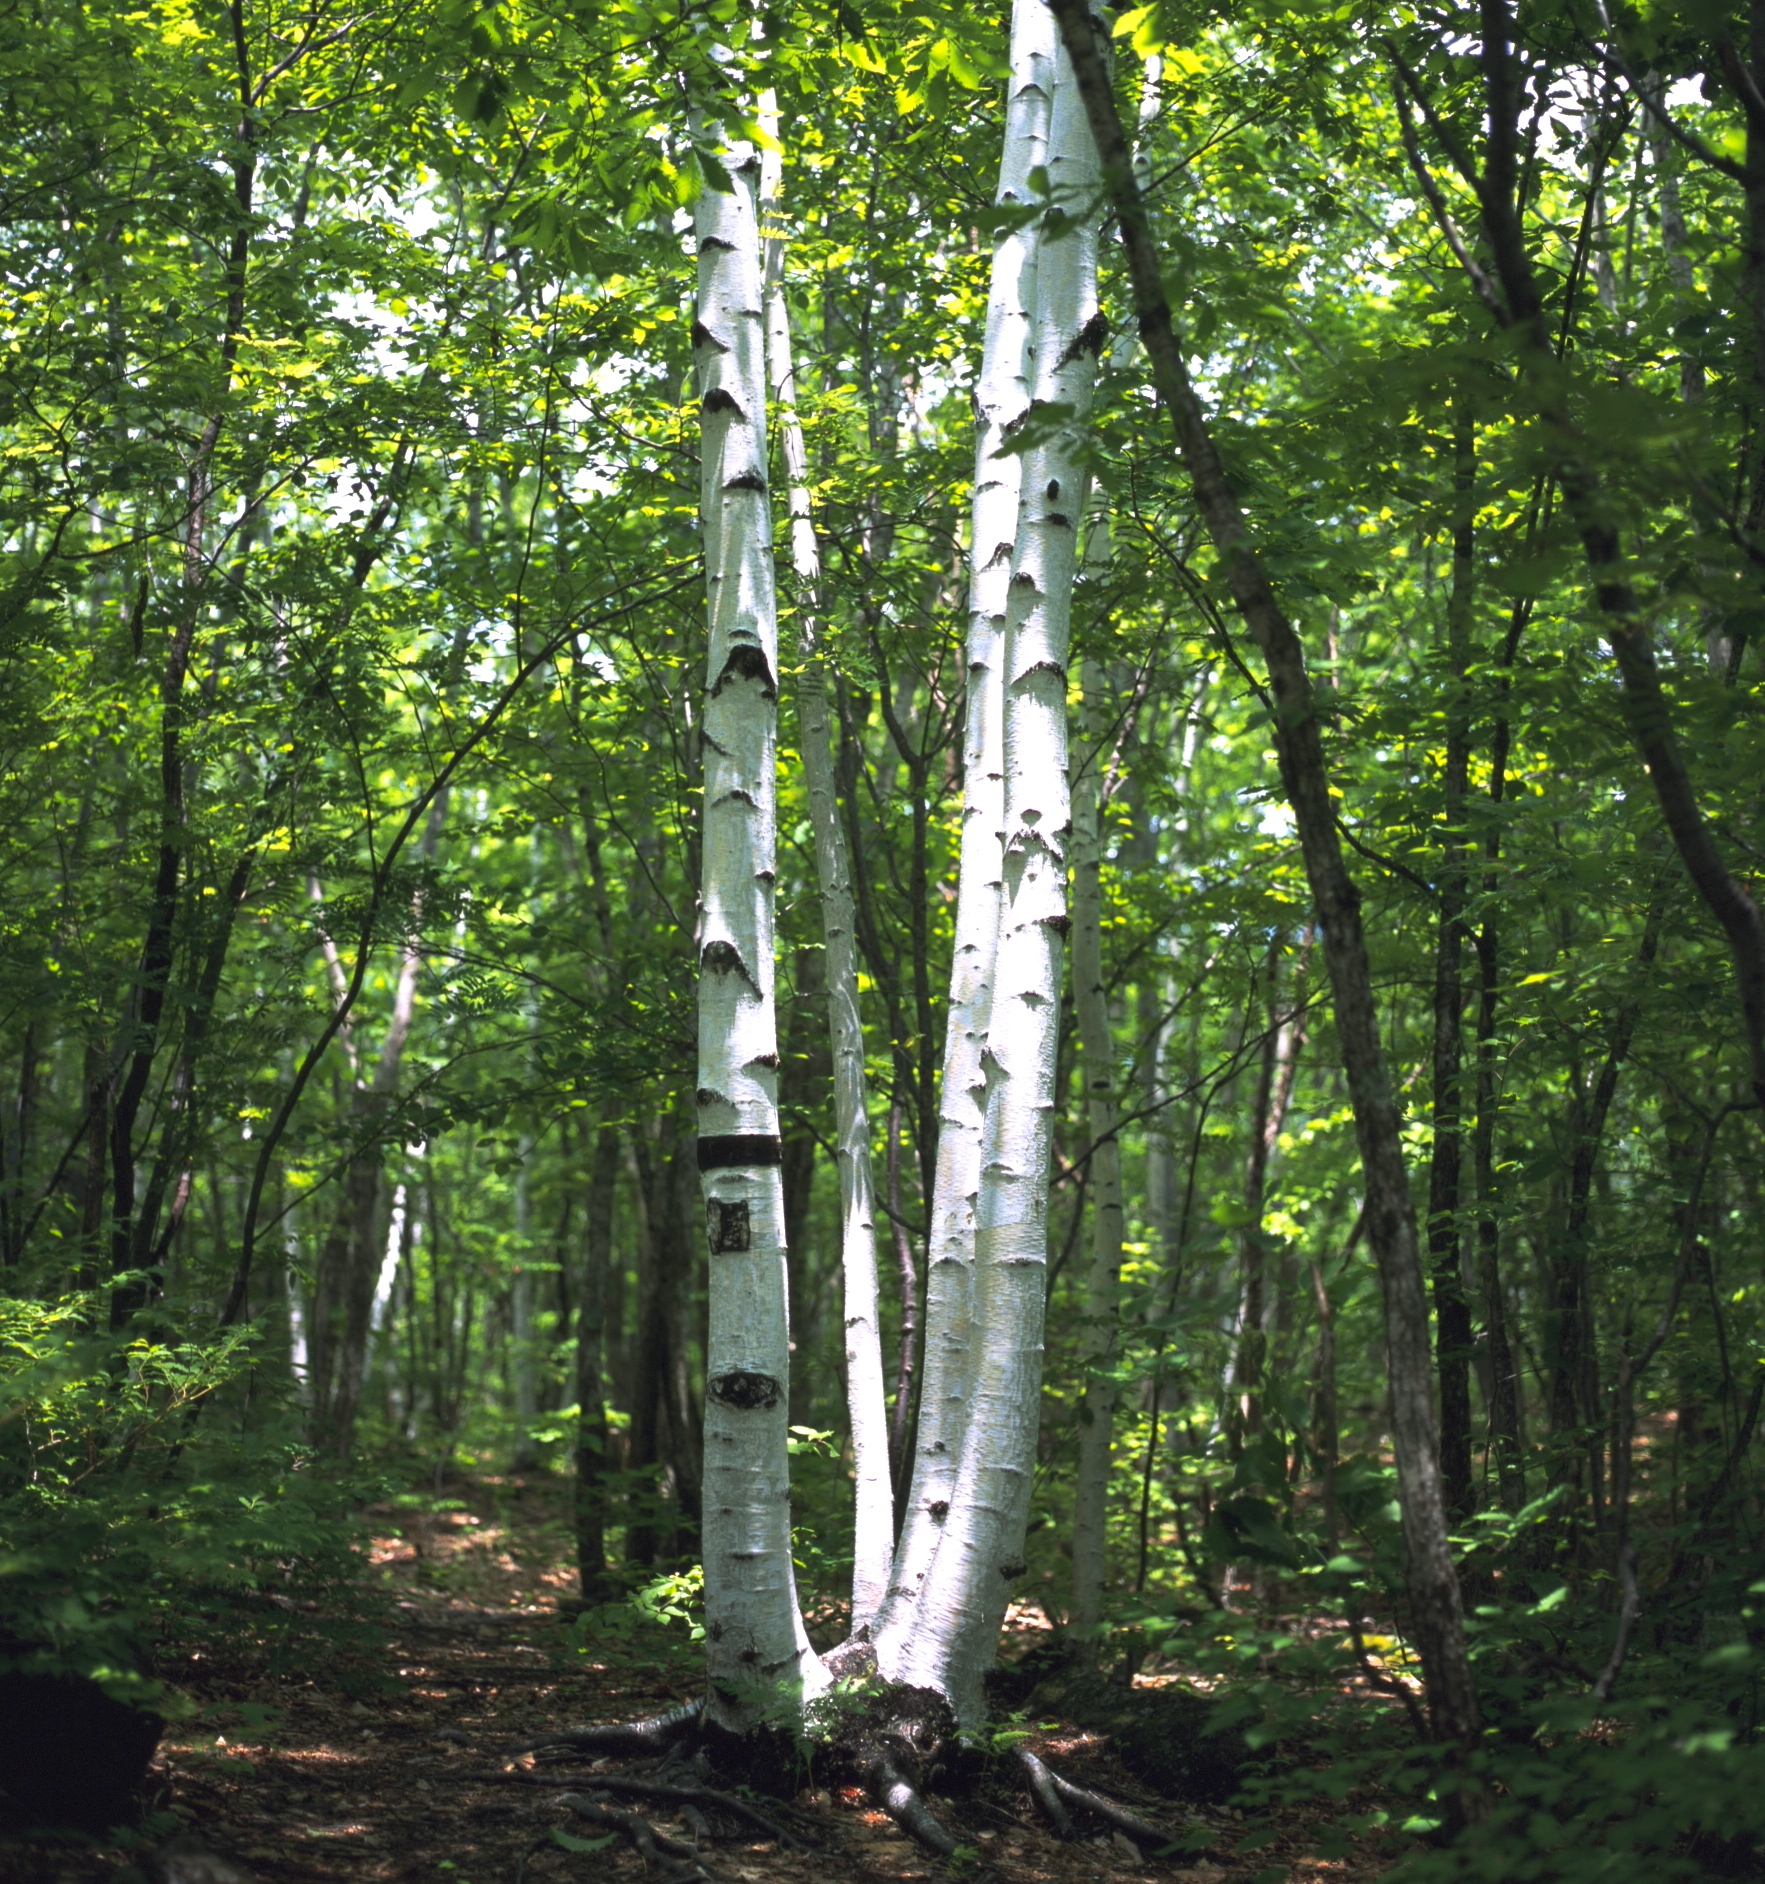 Birch is a great alternative for firewood